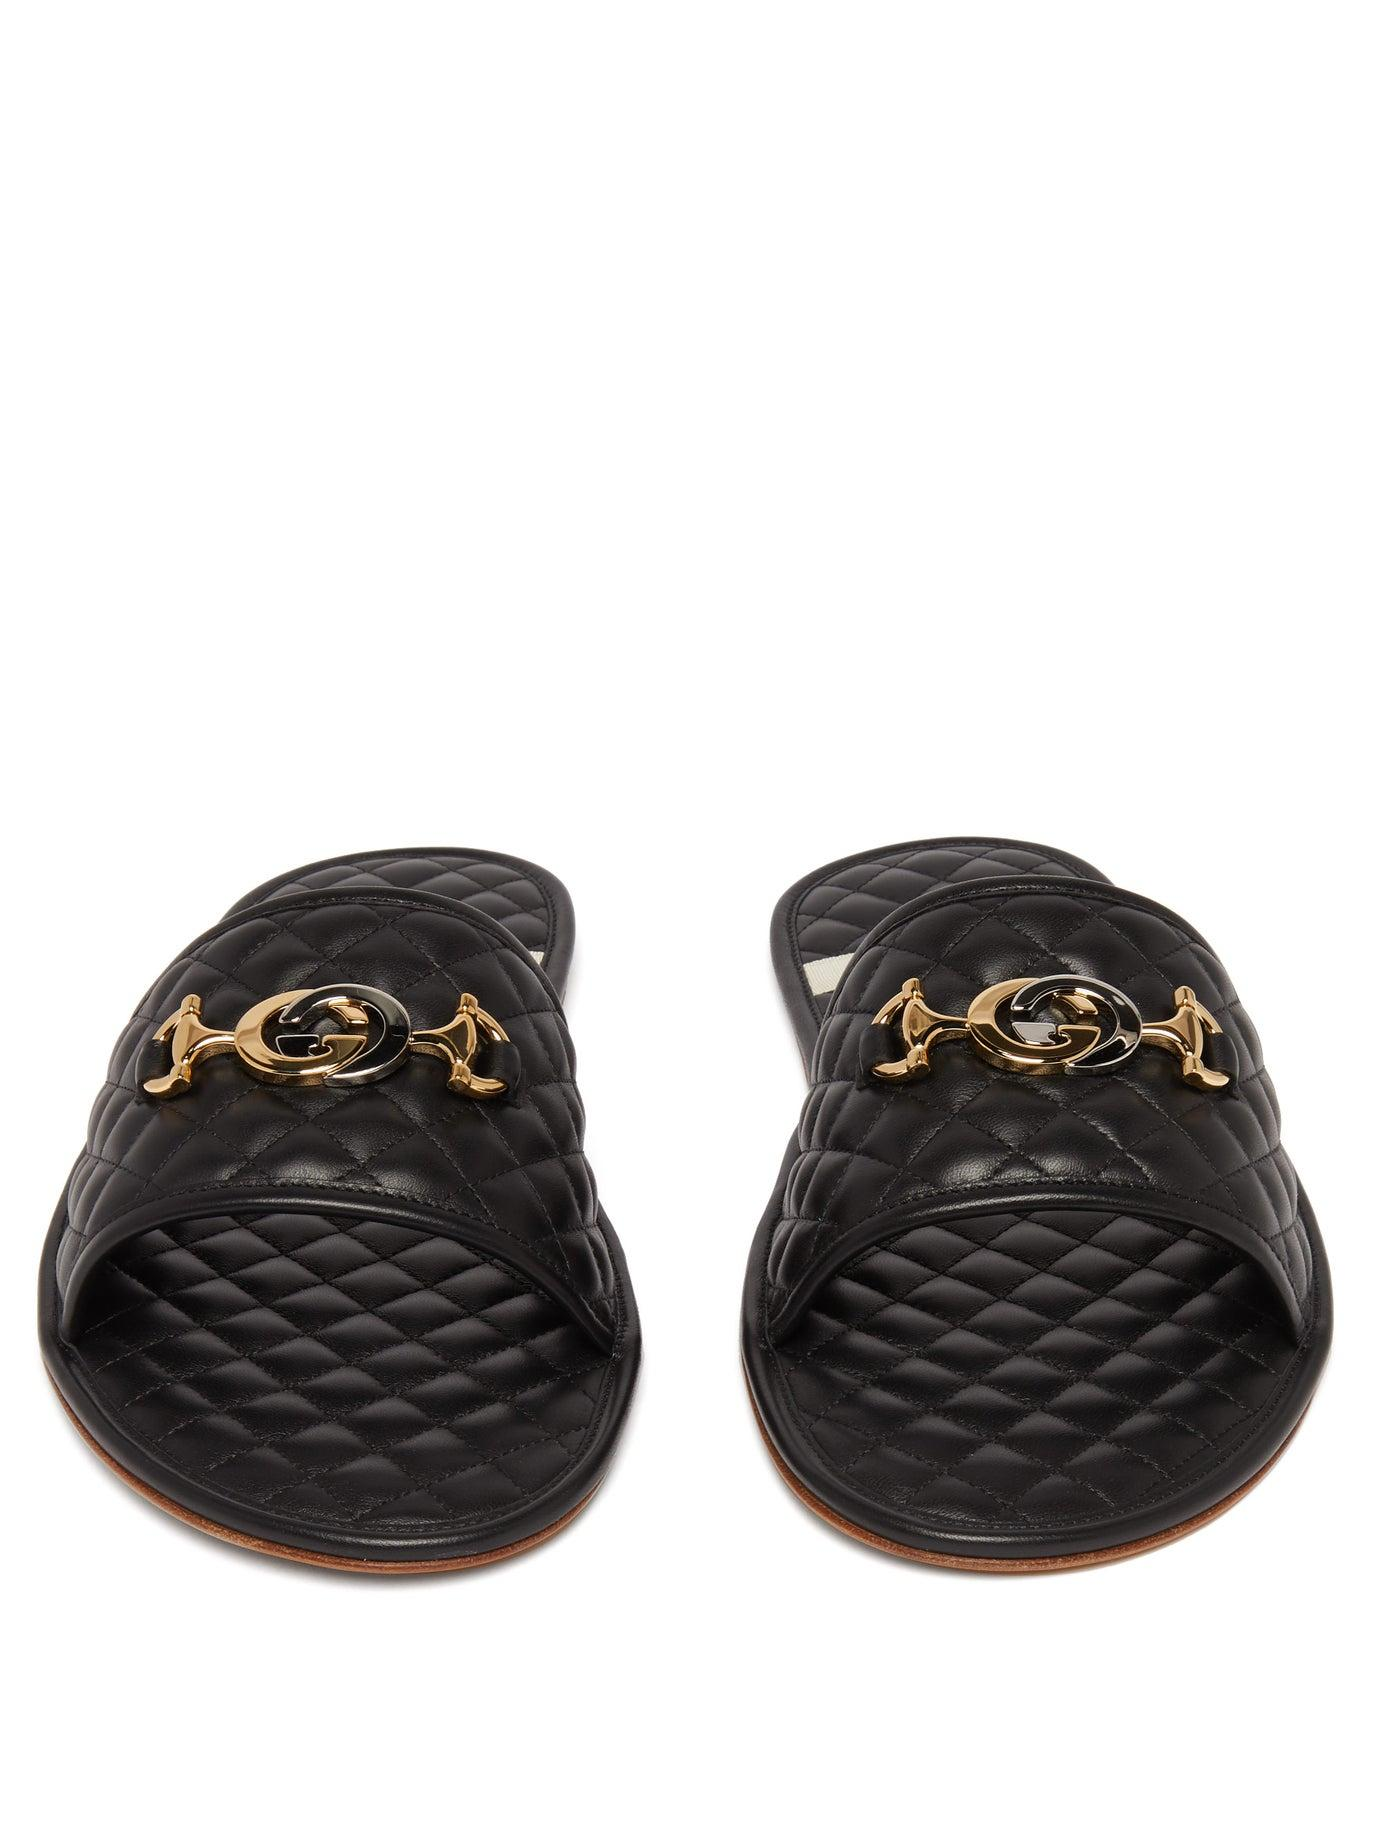 2e18717f086 Men's Black Gg Plaque Quilted Leather Slippers